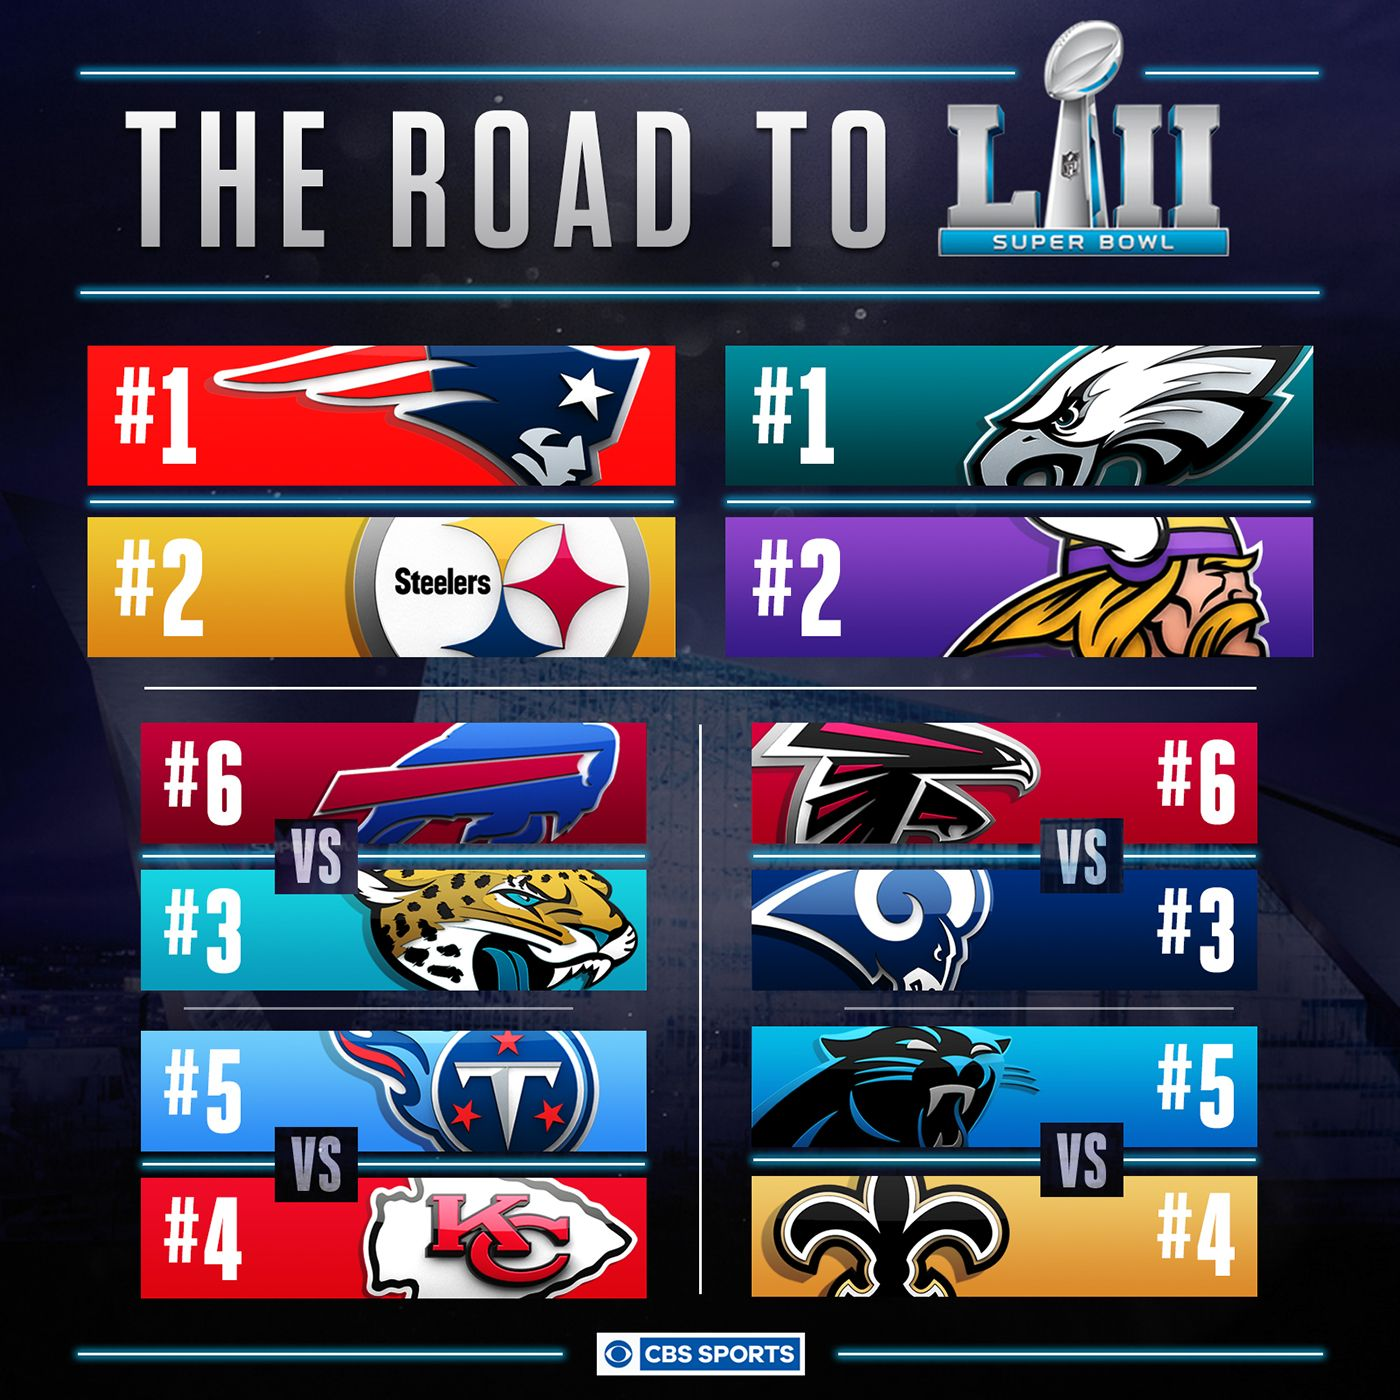 When the NFL Playoffs start I love graphics like this